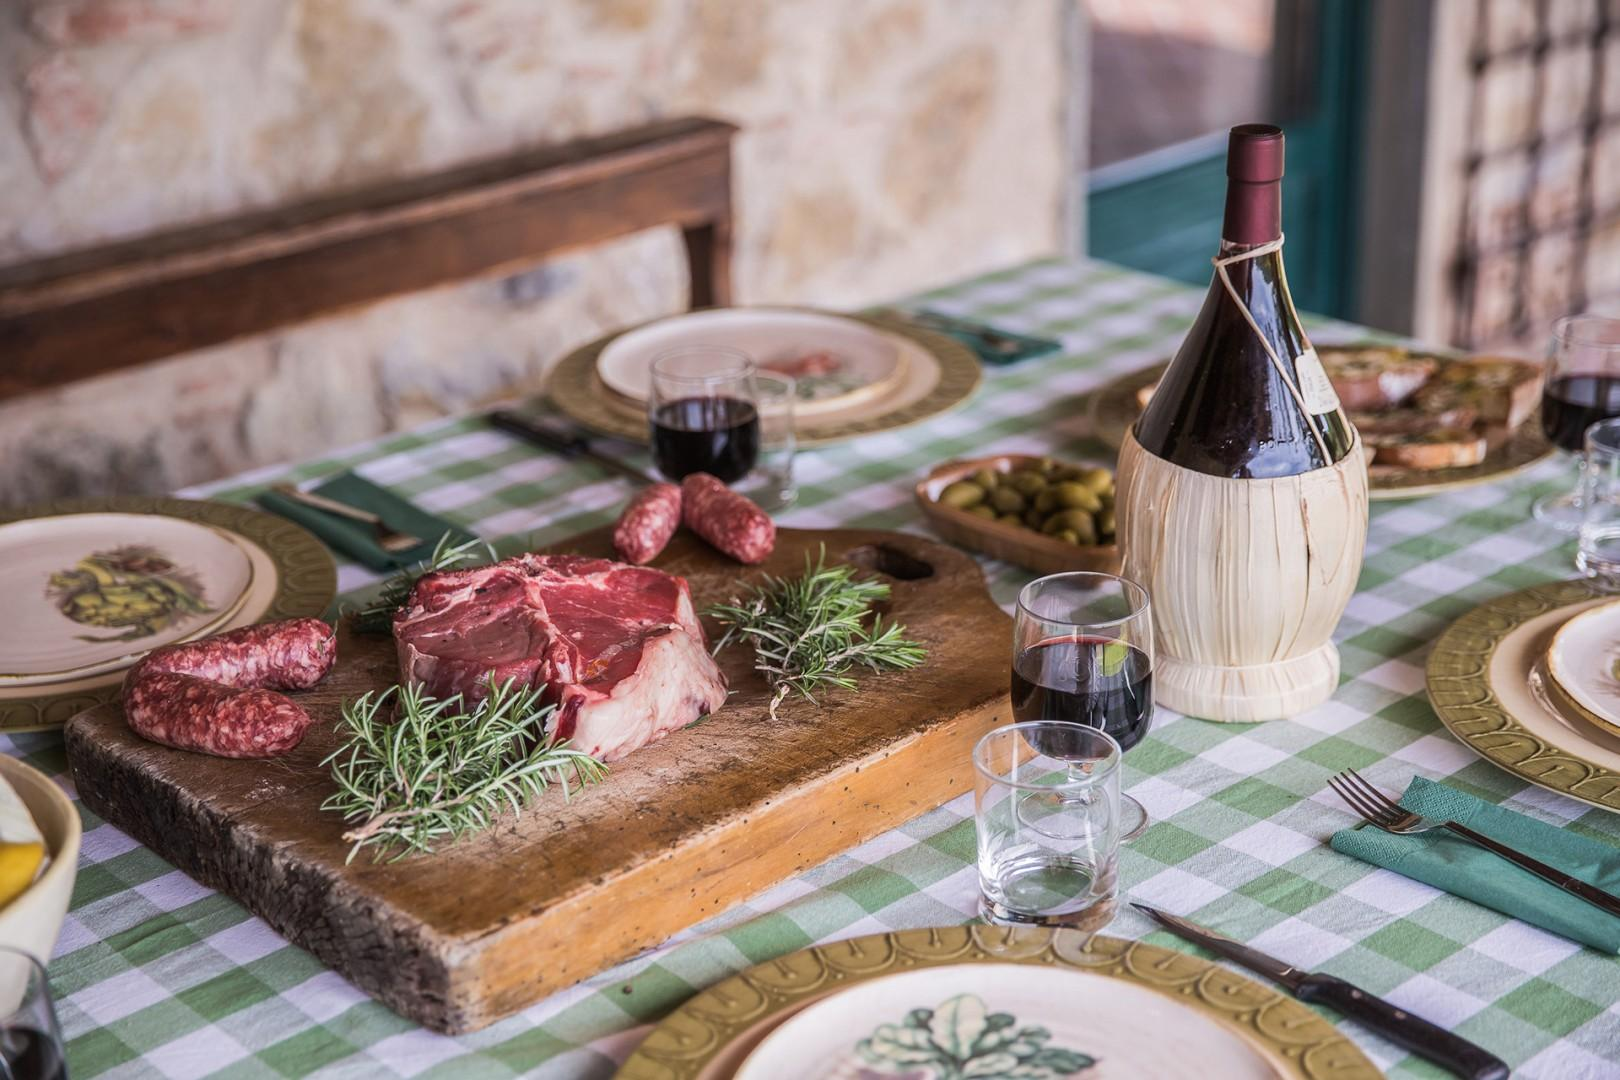 Tuscany is famous for Chianina beef, one of the oldest breeds of cattle in the world.